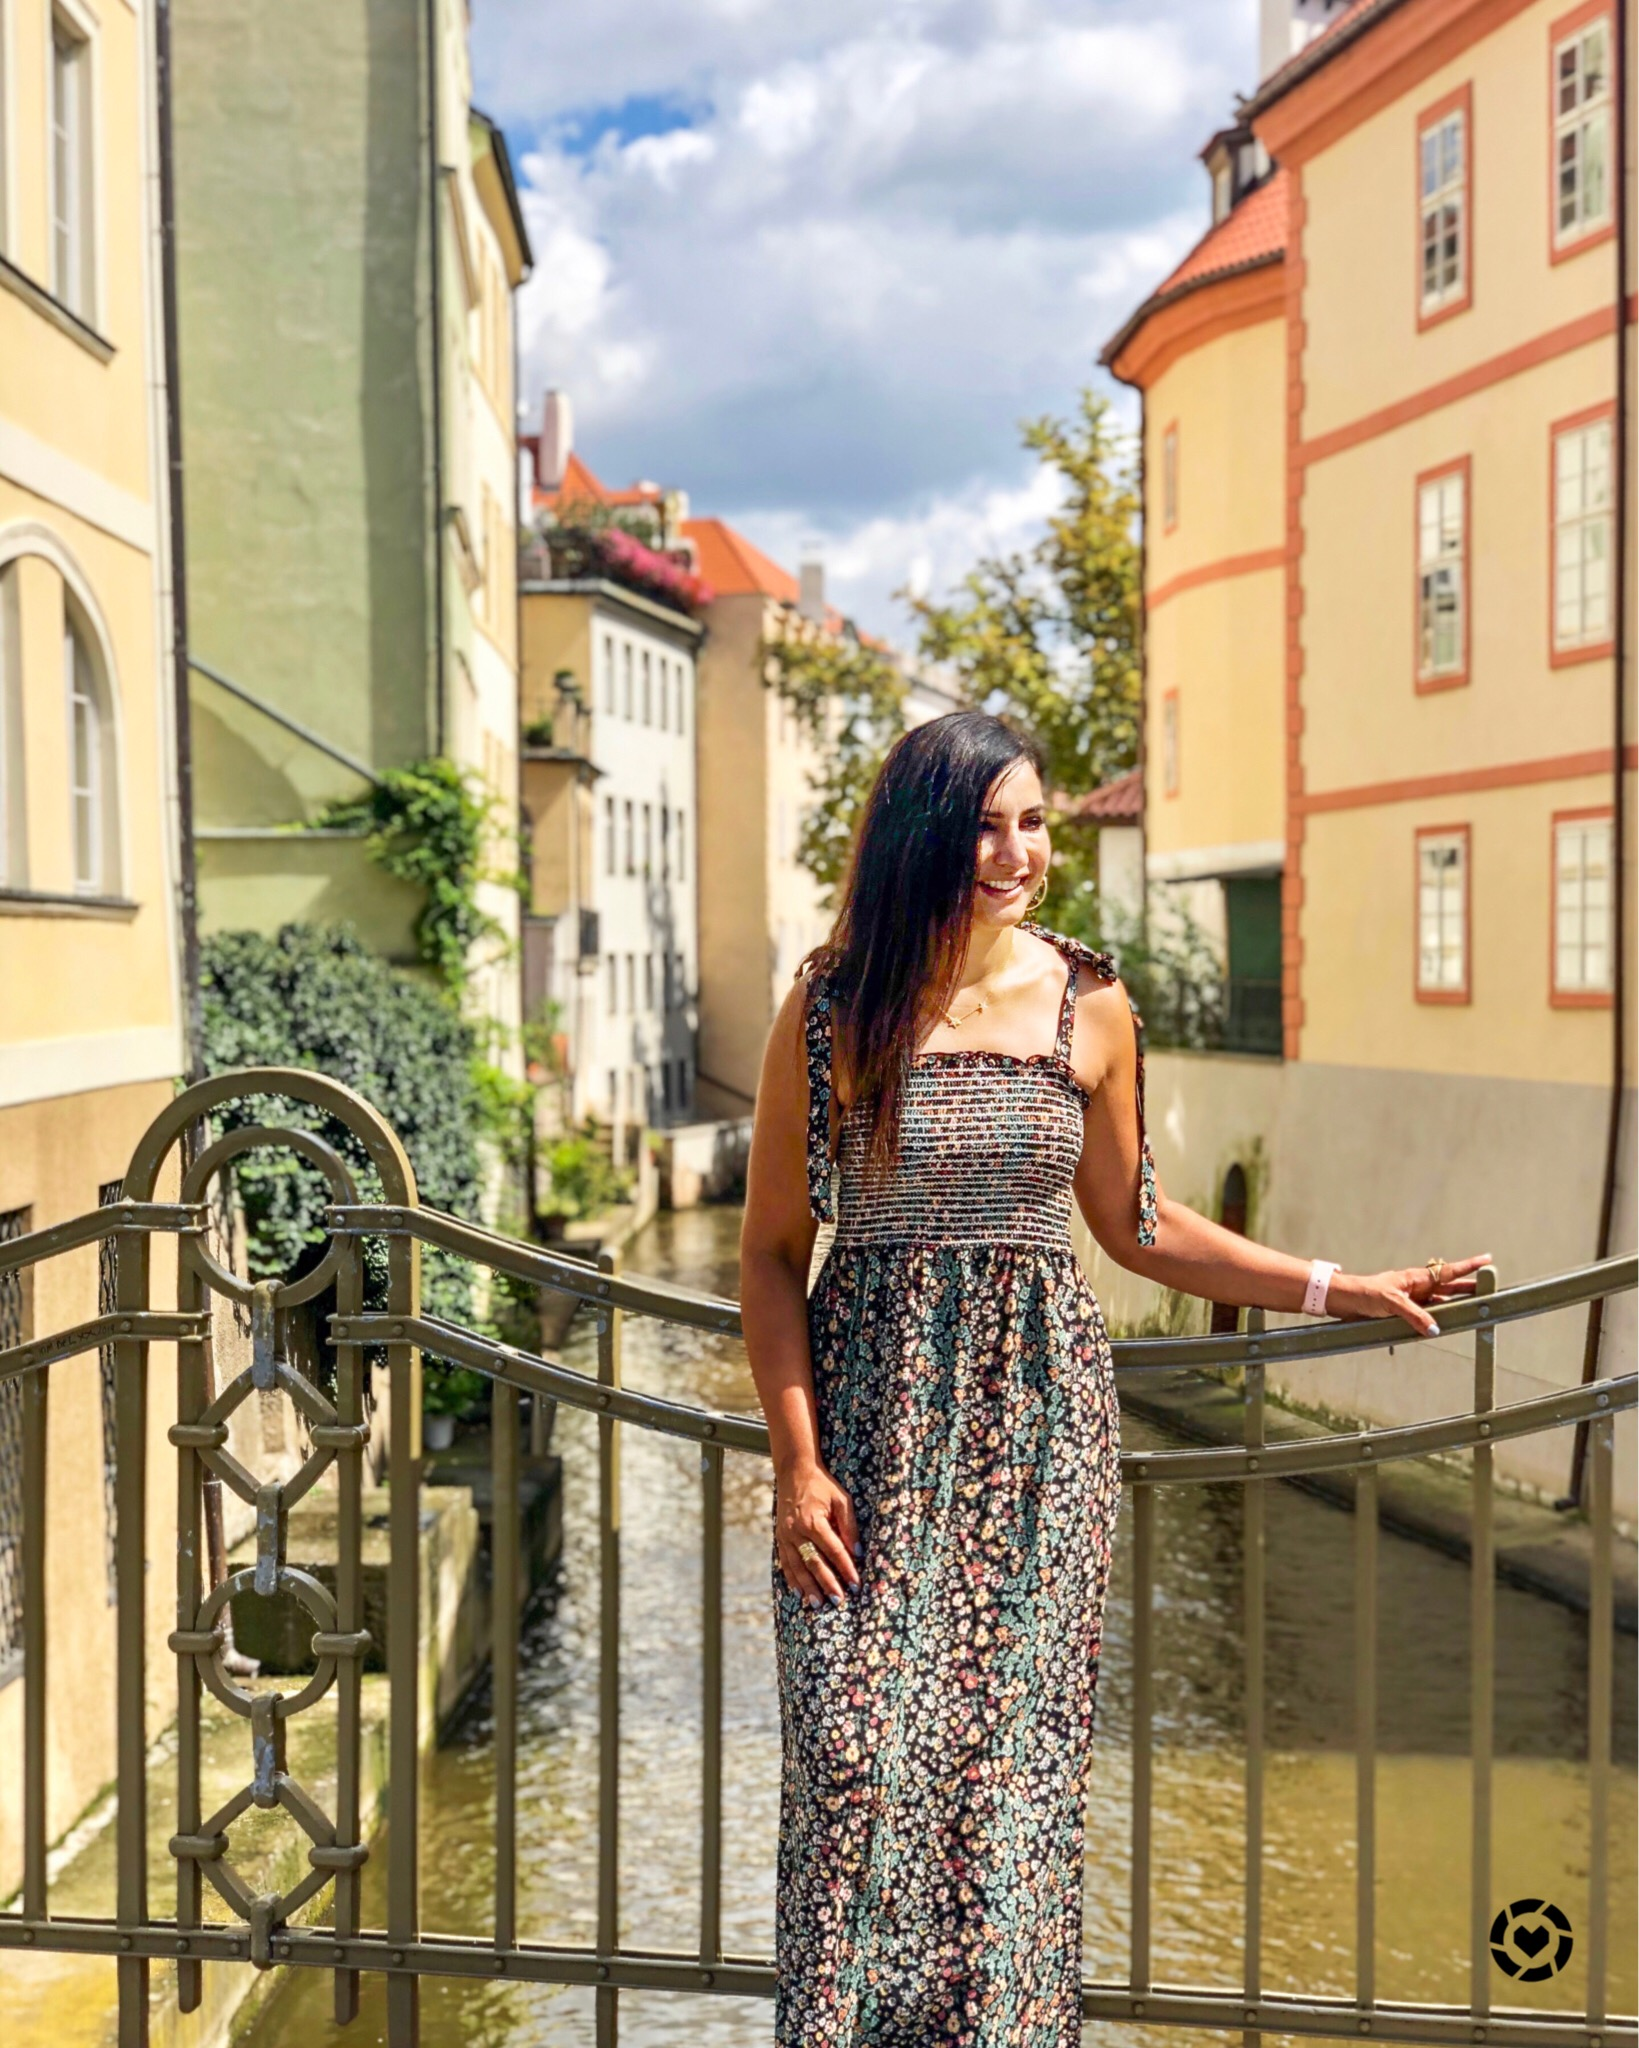 Washingtonian Magazine's Most Stylish Contest & 72 Hours In Prague